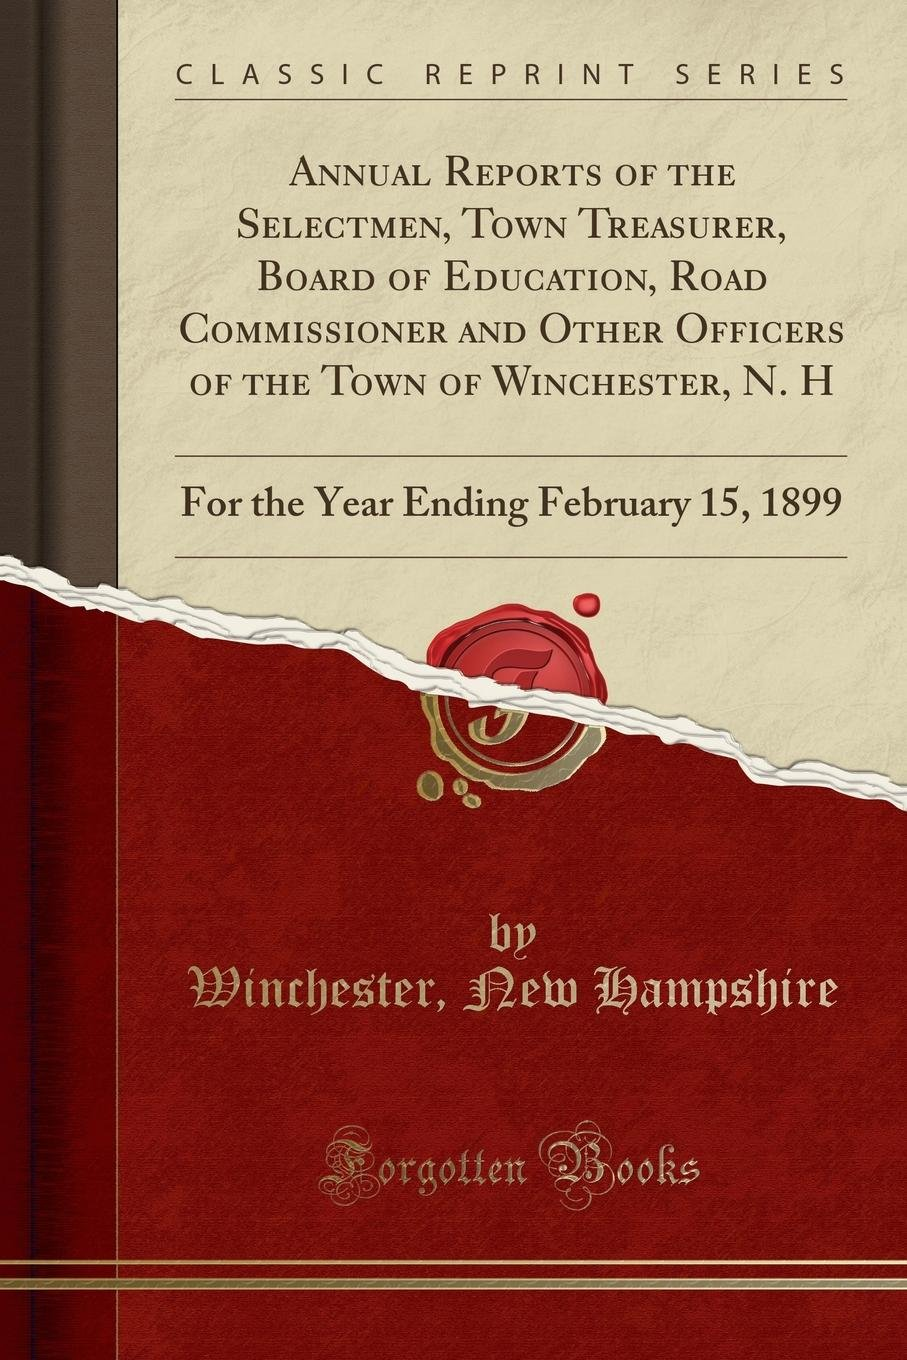 Read Online Annual Reports of the Selectmen, Town Treasurer, Board of Education, Road Commissioner and Other Officers of the Town of Winchester, N. H: For the Year Ending February 15, 1899 (Classic Reprint) pdf epub